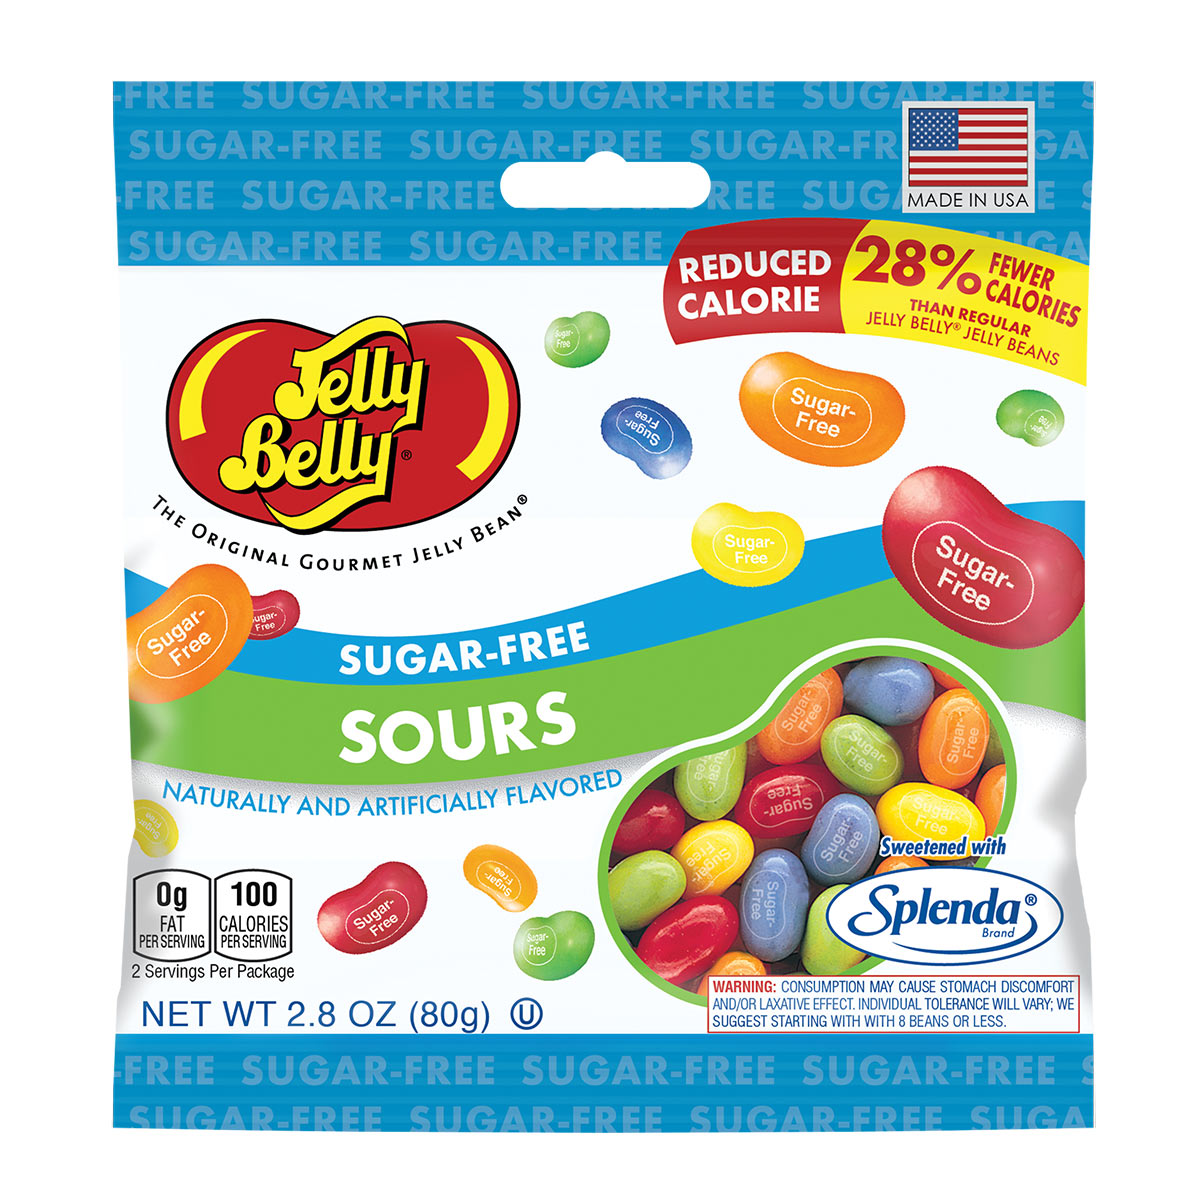 SugarFree Sours Jelly Beans 28 oz Bag